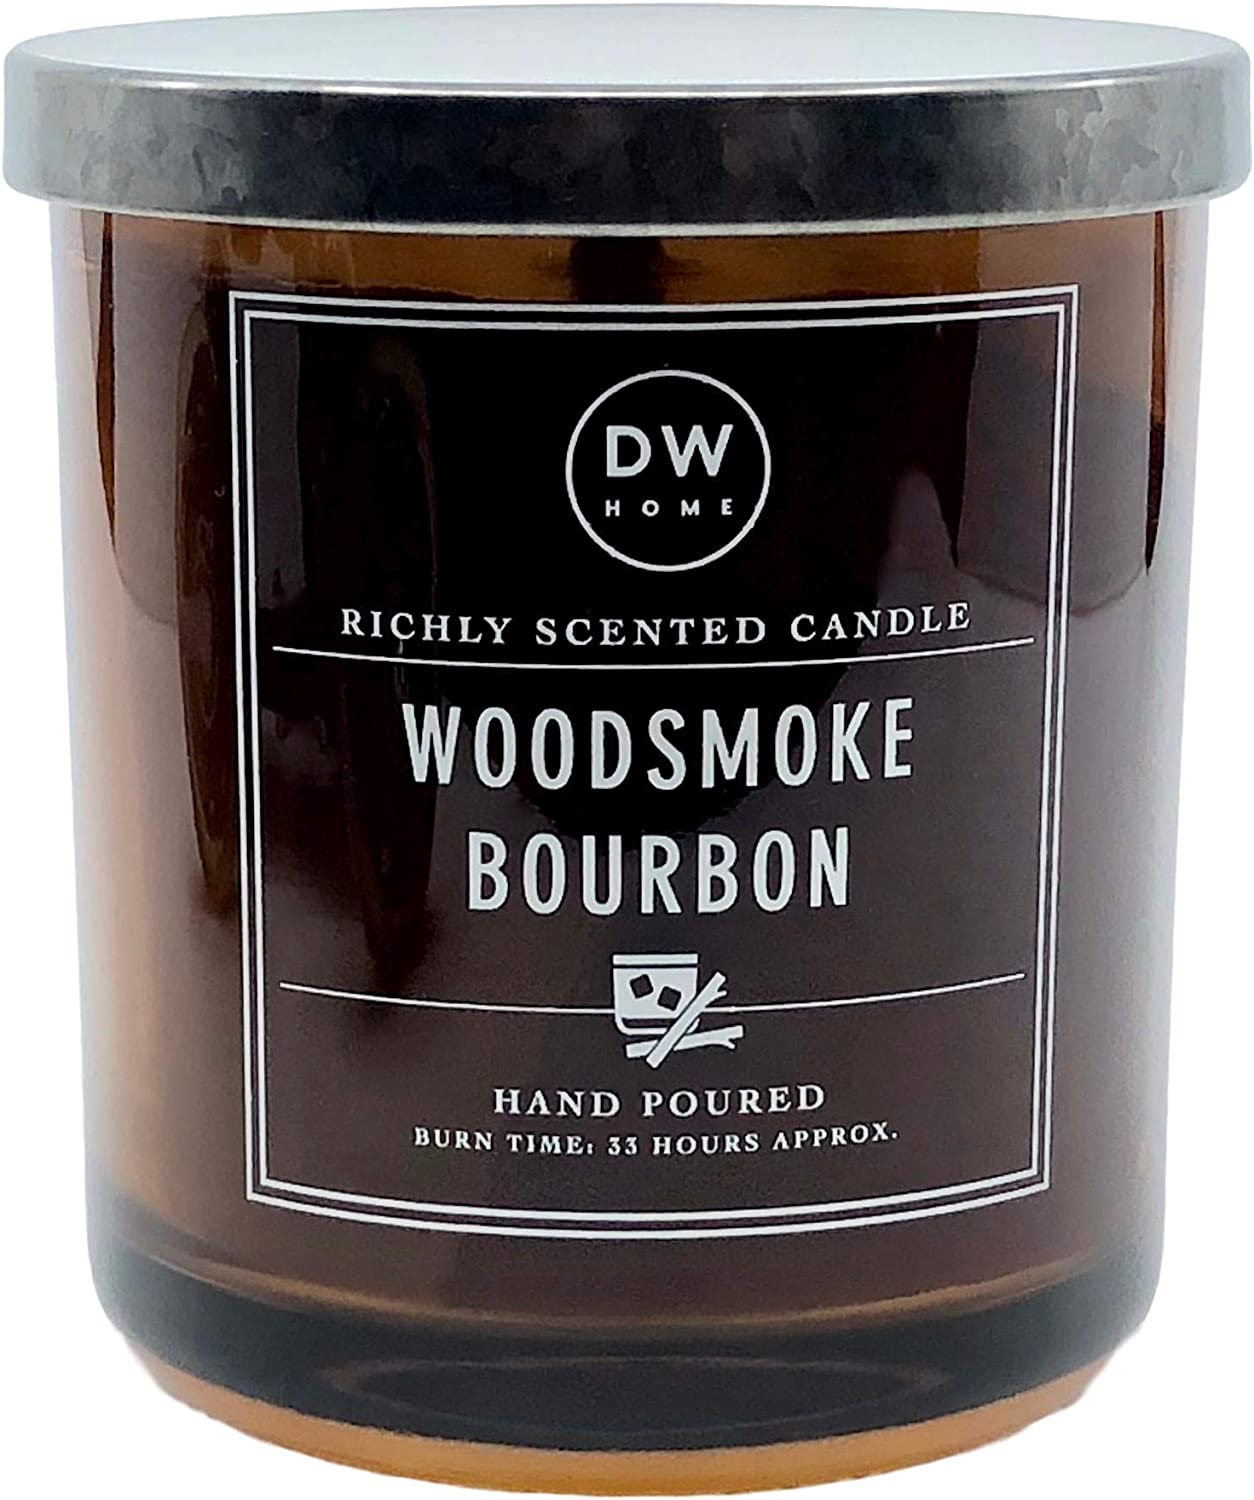 DW Home Woodsmoke Bourbon Scented Candle